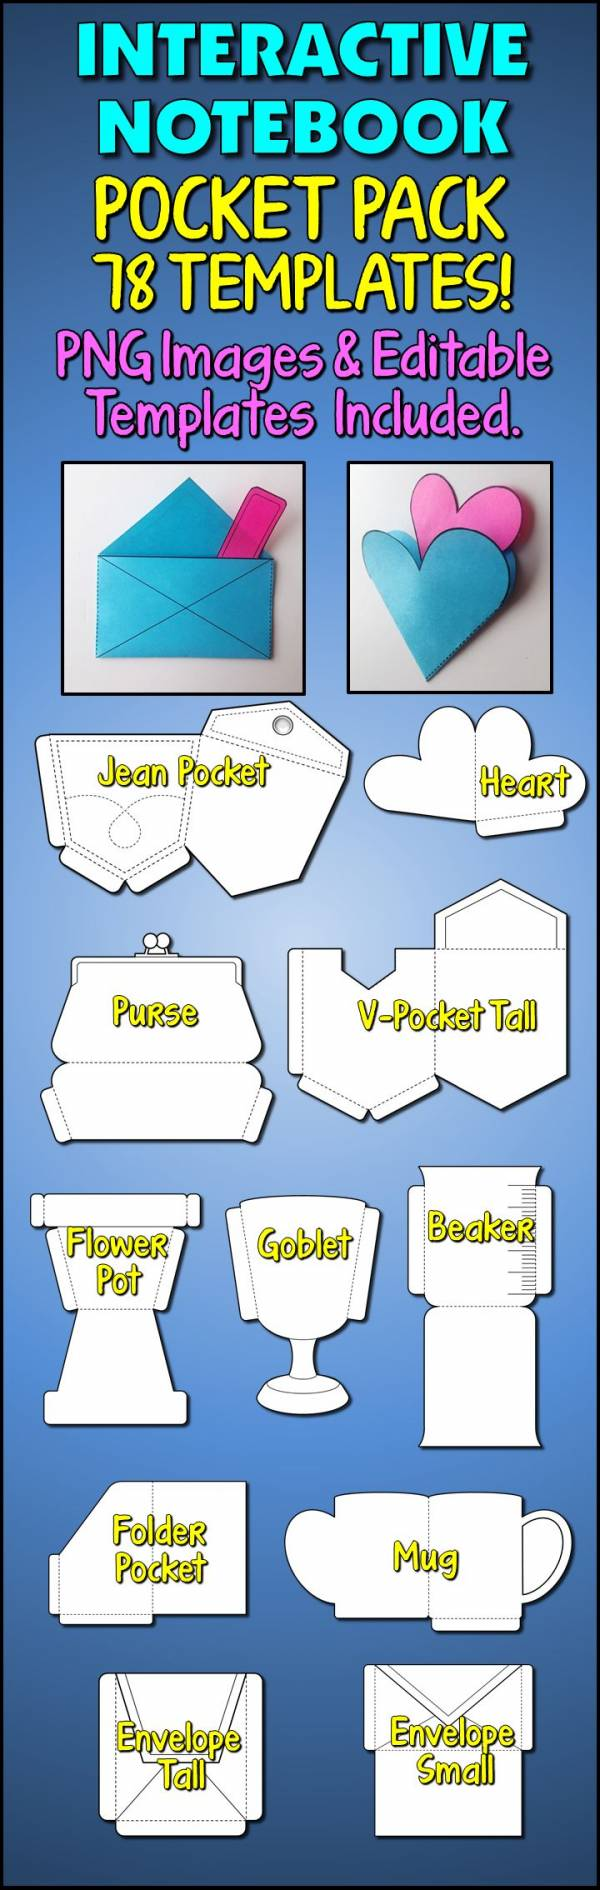 Unusual 10 Best Resume Tips Small 10 Half Hexagon Template Rectangular 1099 Excel Template 12 Month Timeline Template Youthful 1st Place Certificate Template Coloured2 Round Label Template 10 Ways To Make And Use Paper Pockets | Templates \u0026 Tutorials ..